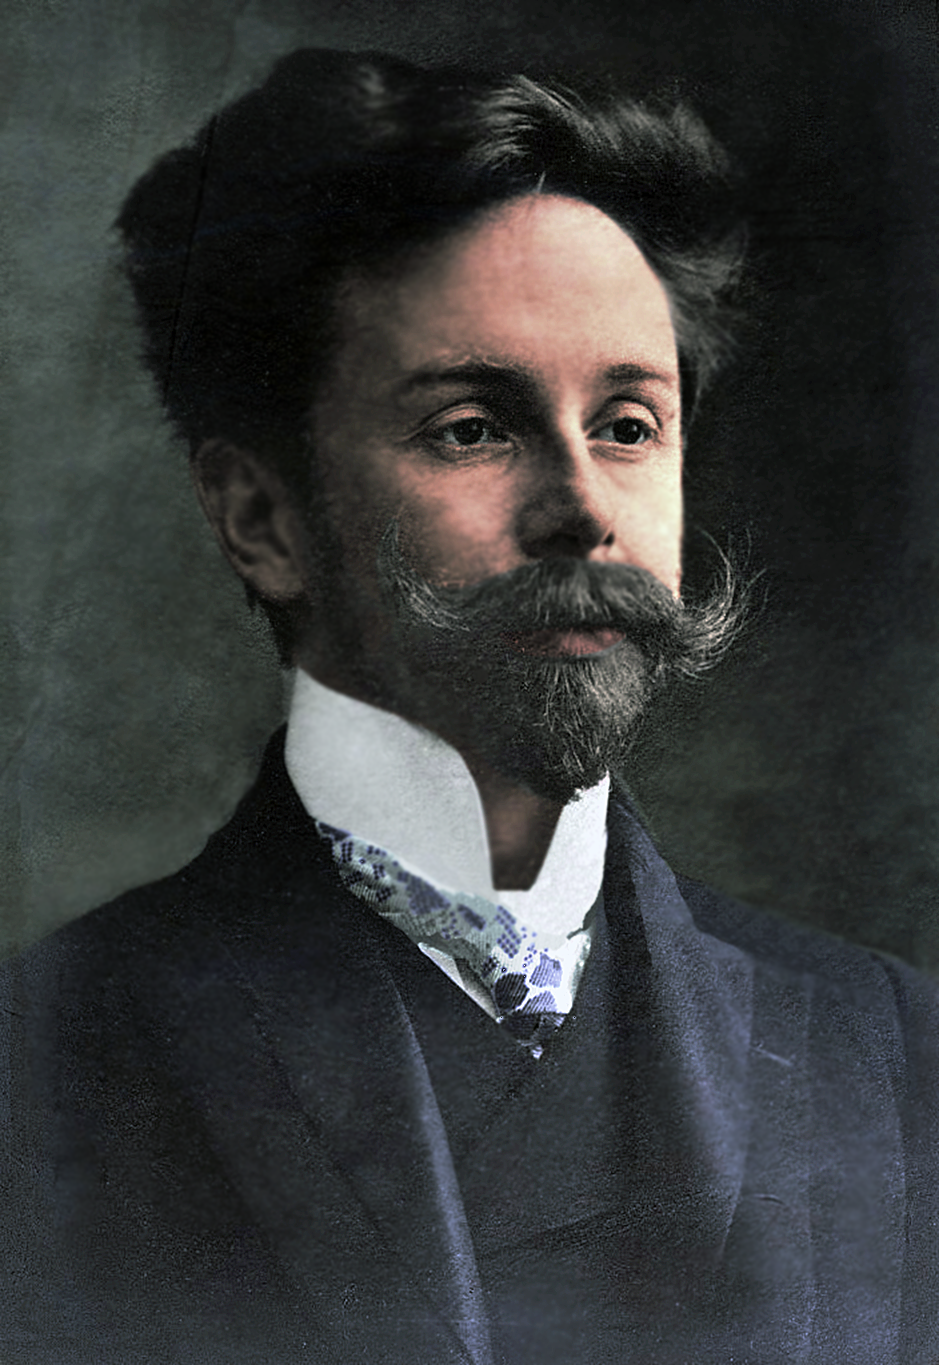 colorized // Alexander Scriabin was a Russian composer and